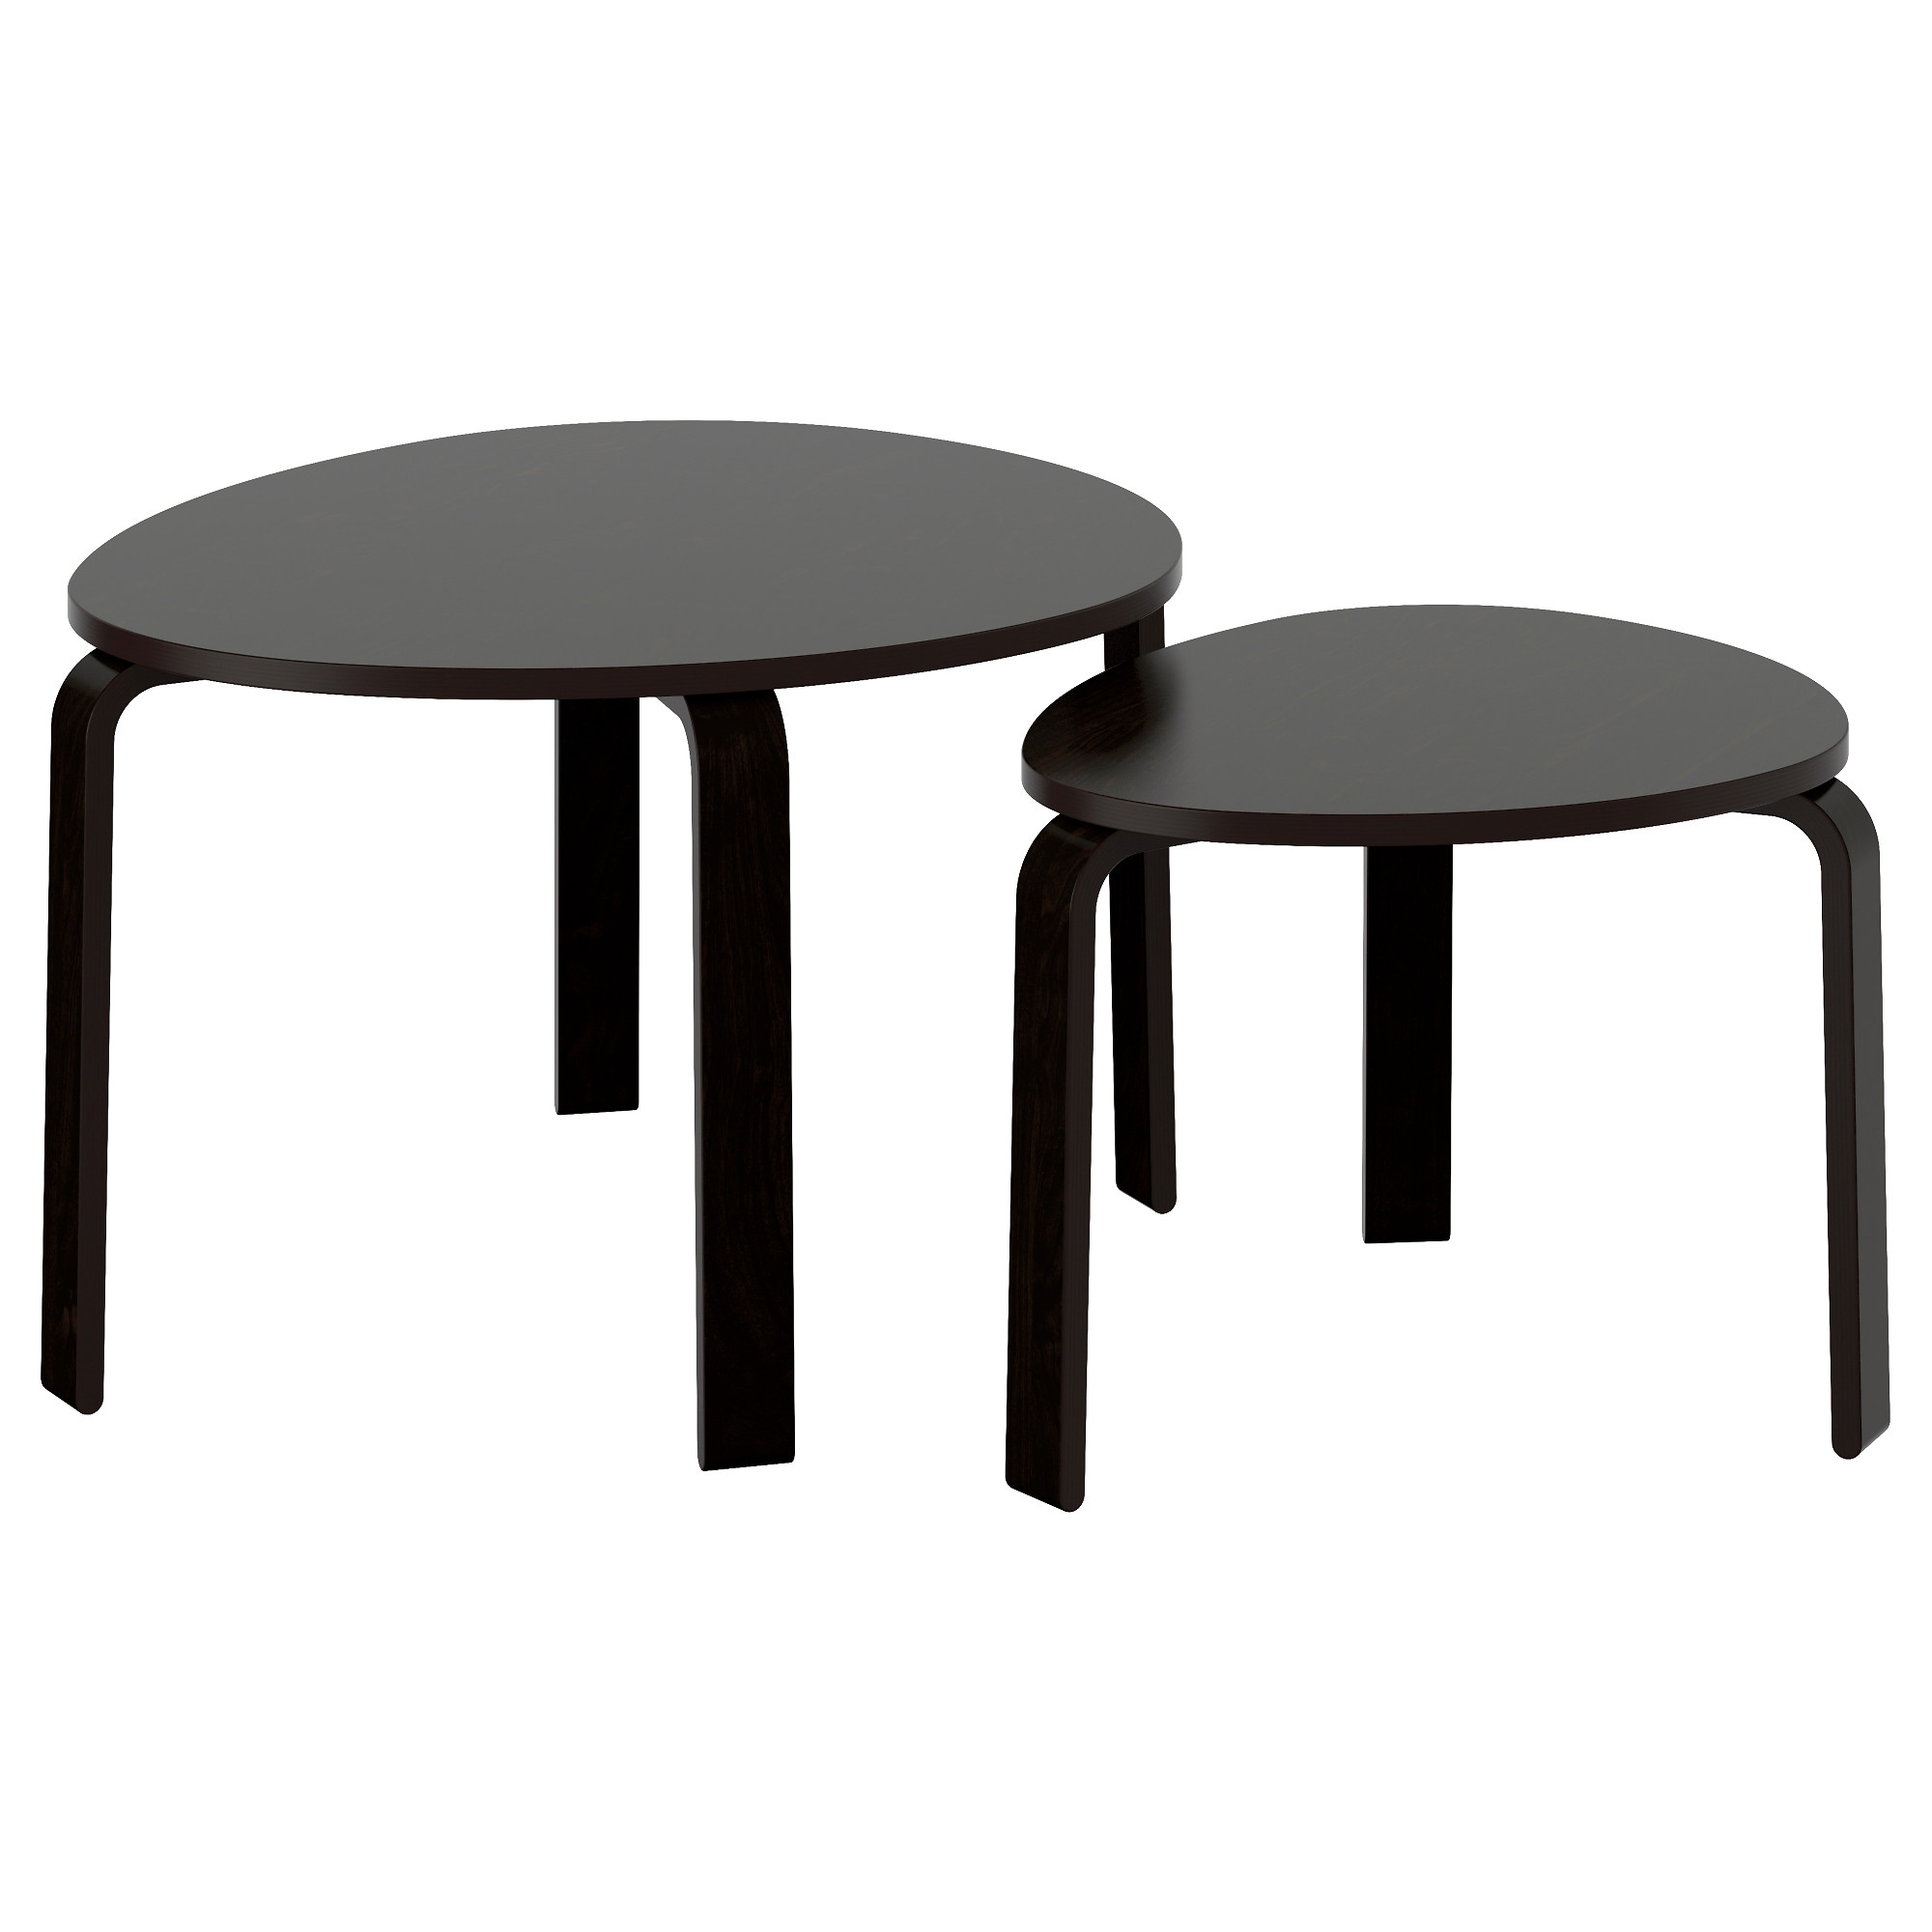 SVALSTA Nesting tables set of 2 white stain IKEA